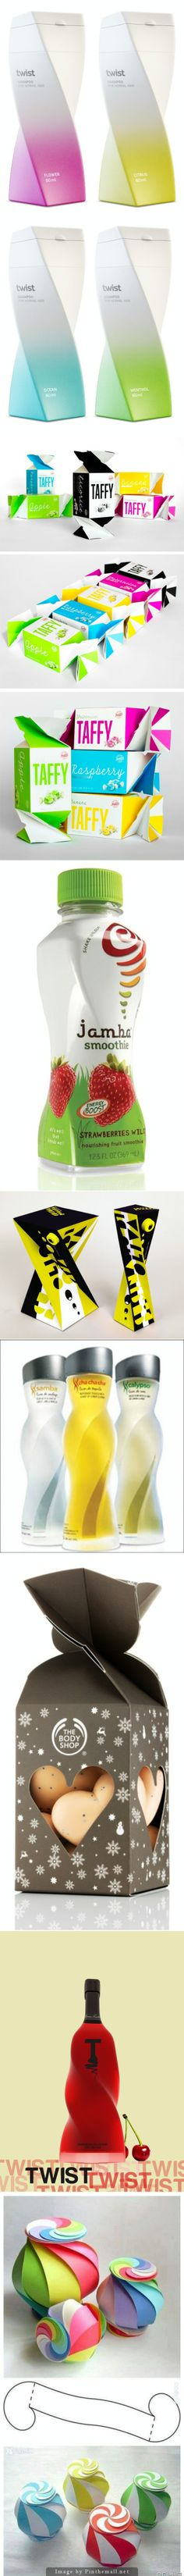 Let's do the twist #packaging curated by Packaging Diva : ) PD created via http://pinterest.com/packagingdiva